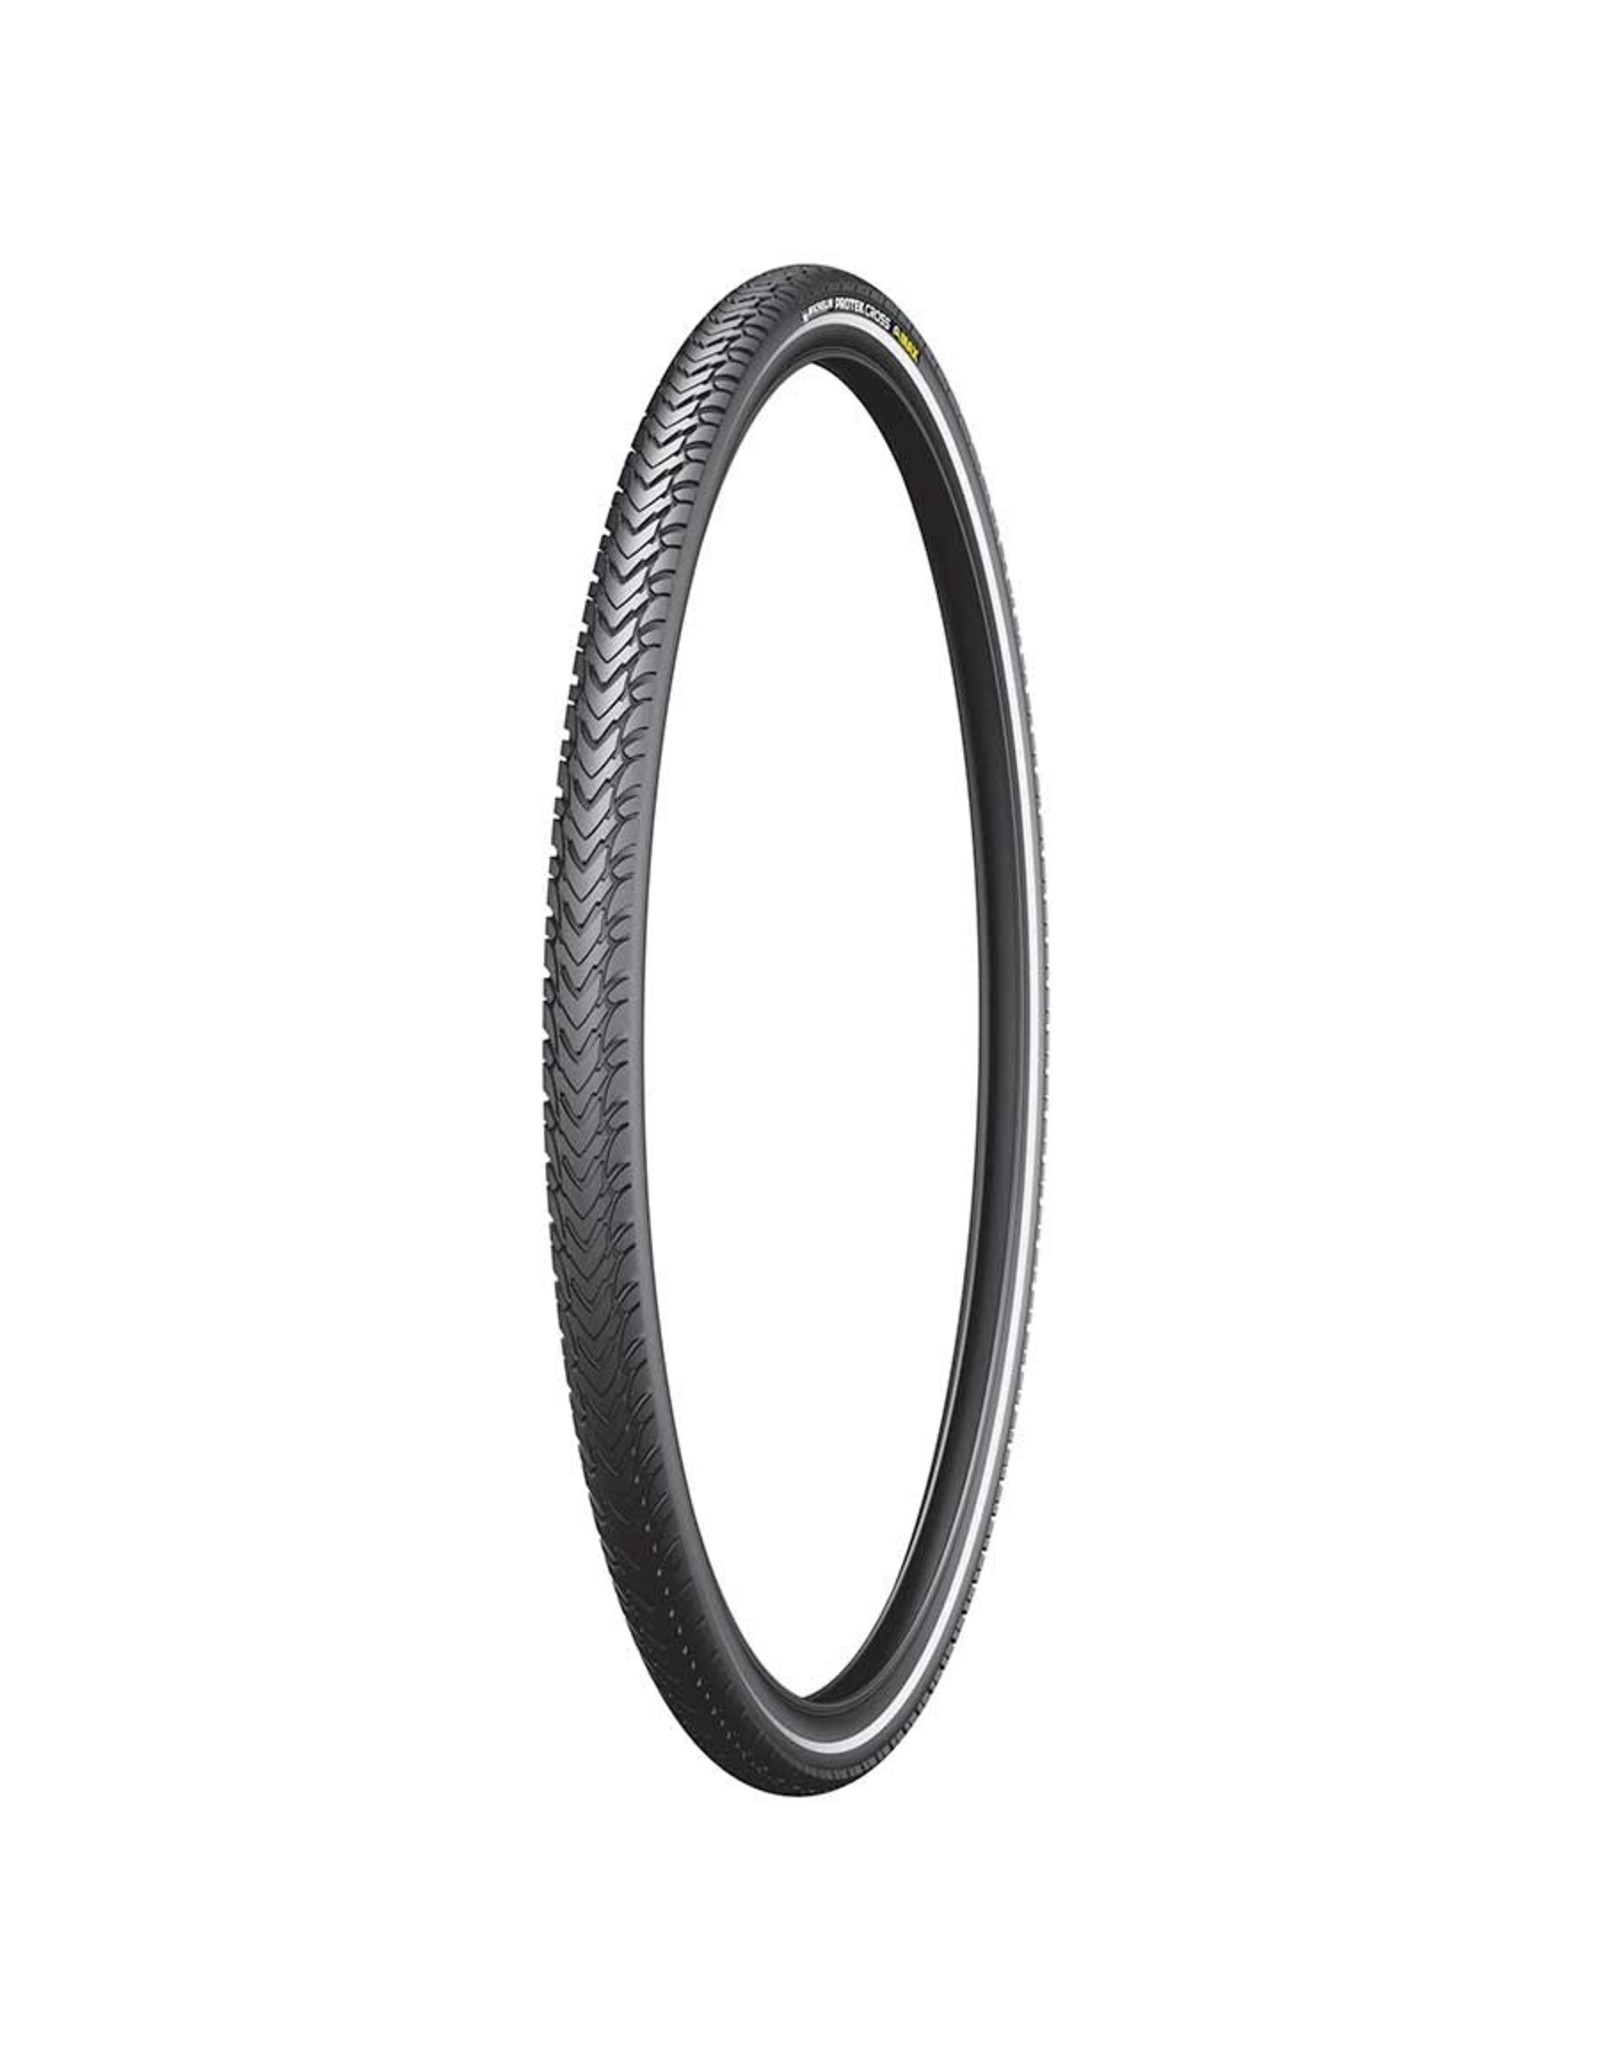 Michelin, Protek Cross Max, Tire, 700x35C, Wire, Clincher, Protek 5mm, Reflex, 22TPI, Black